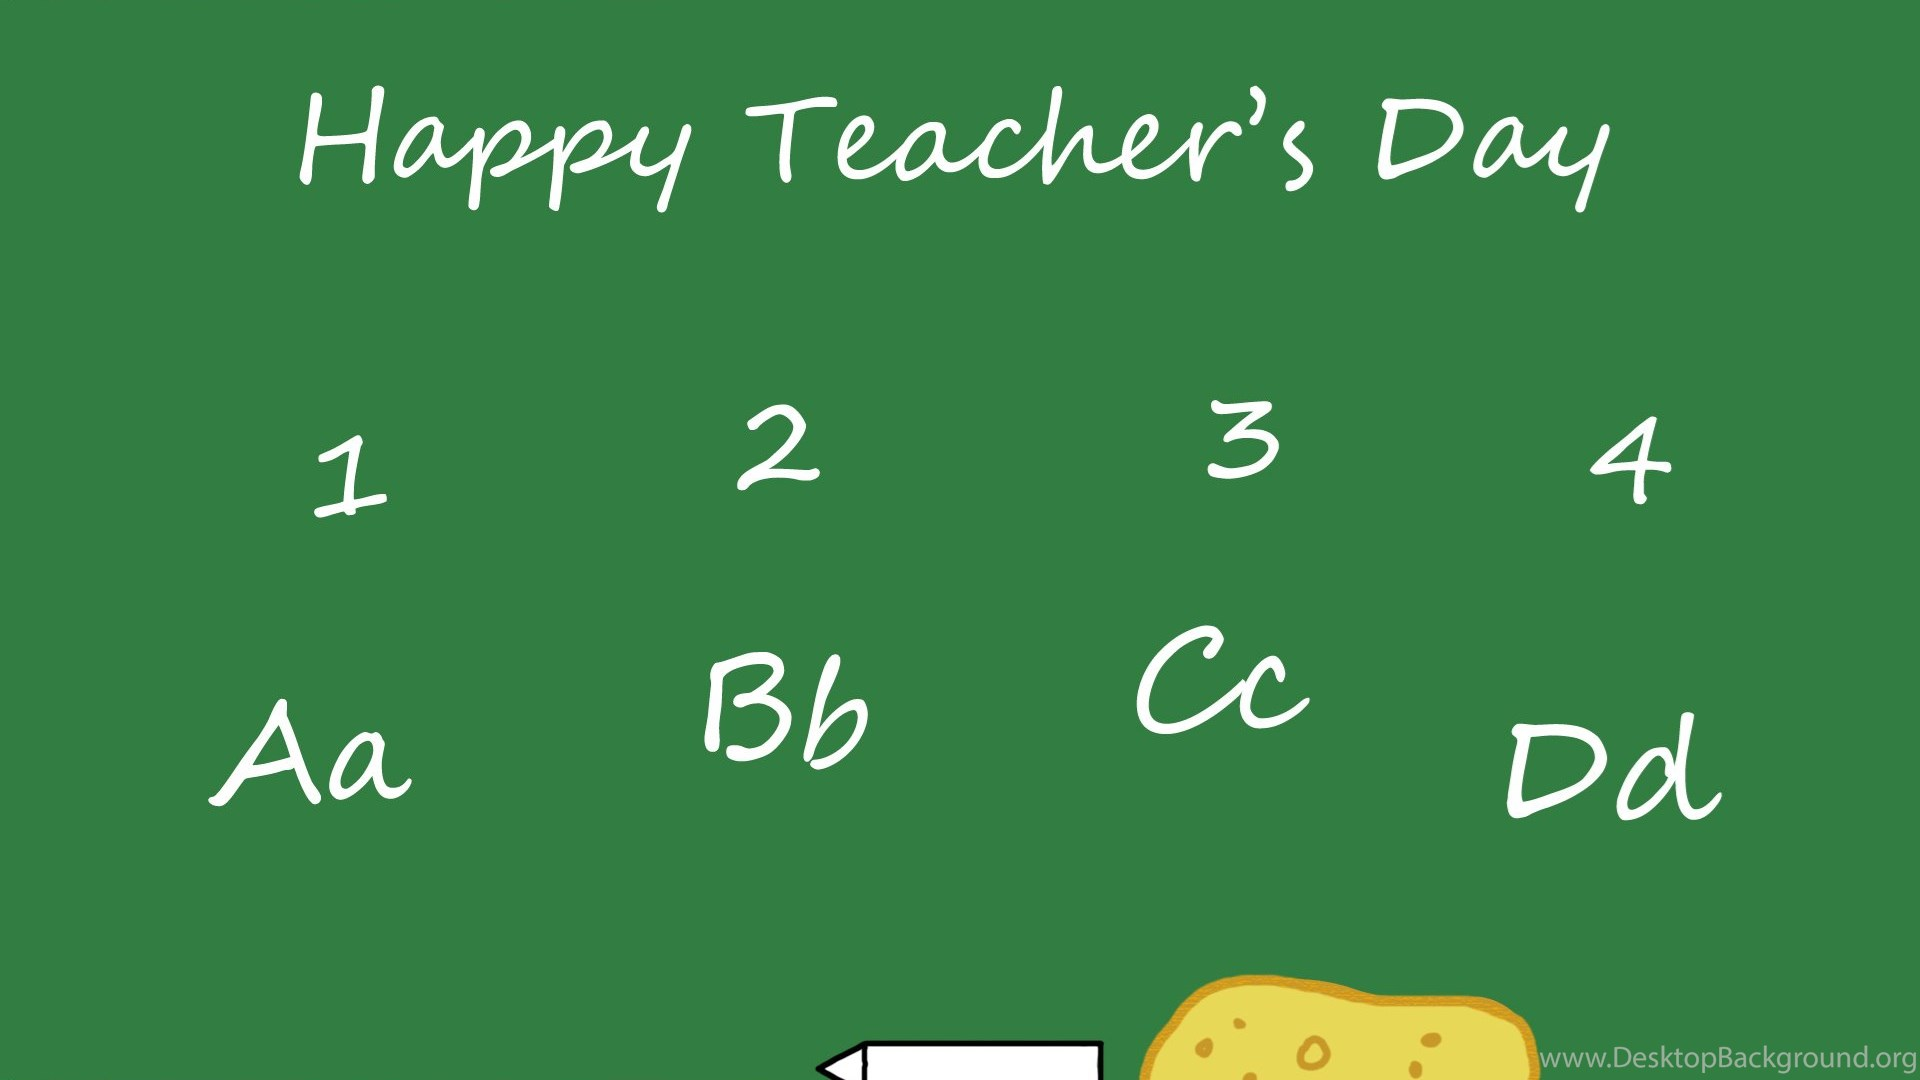 Happy teachers day hd images wallpapers pics and photos free popular altavistaventures Images